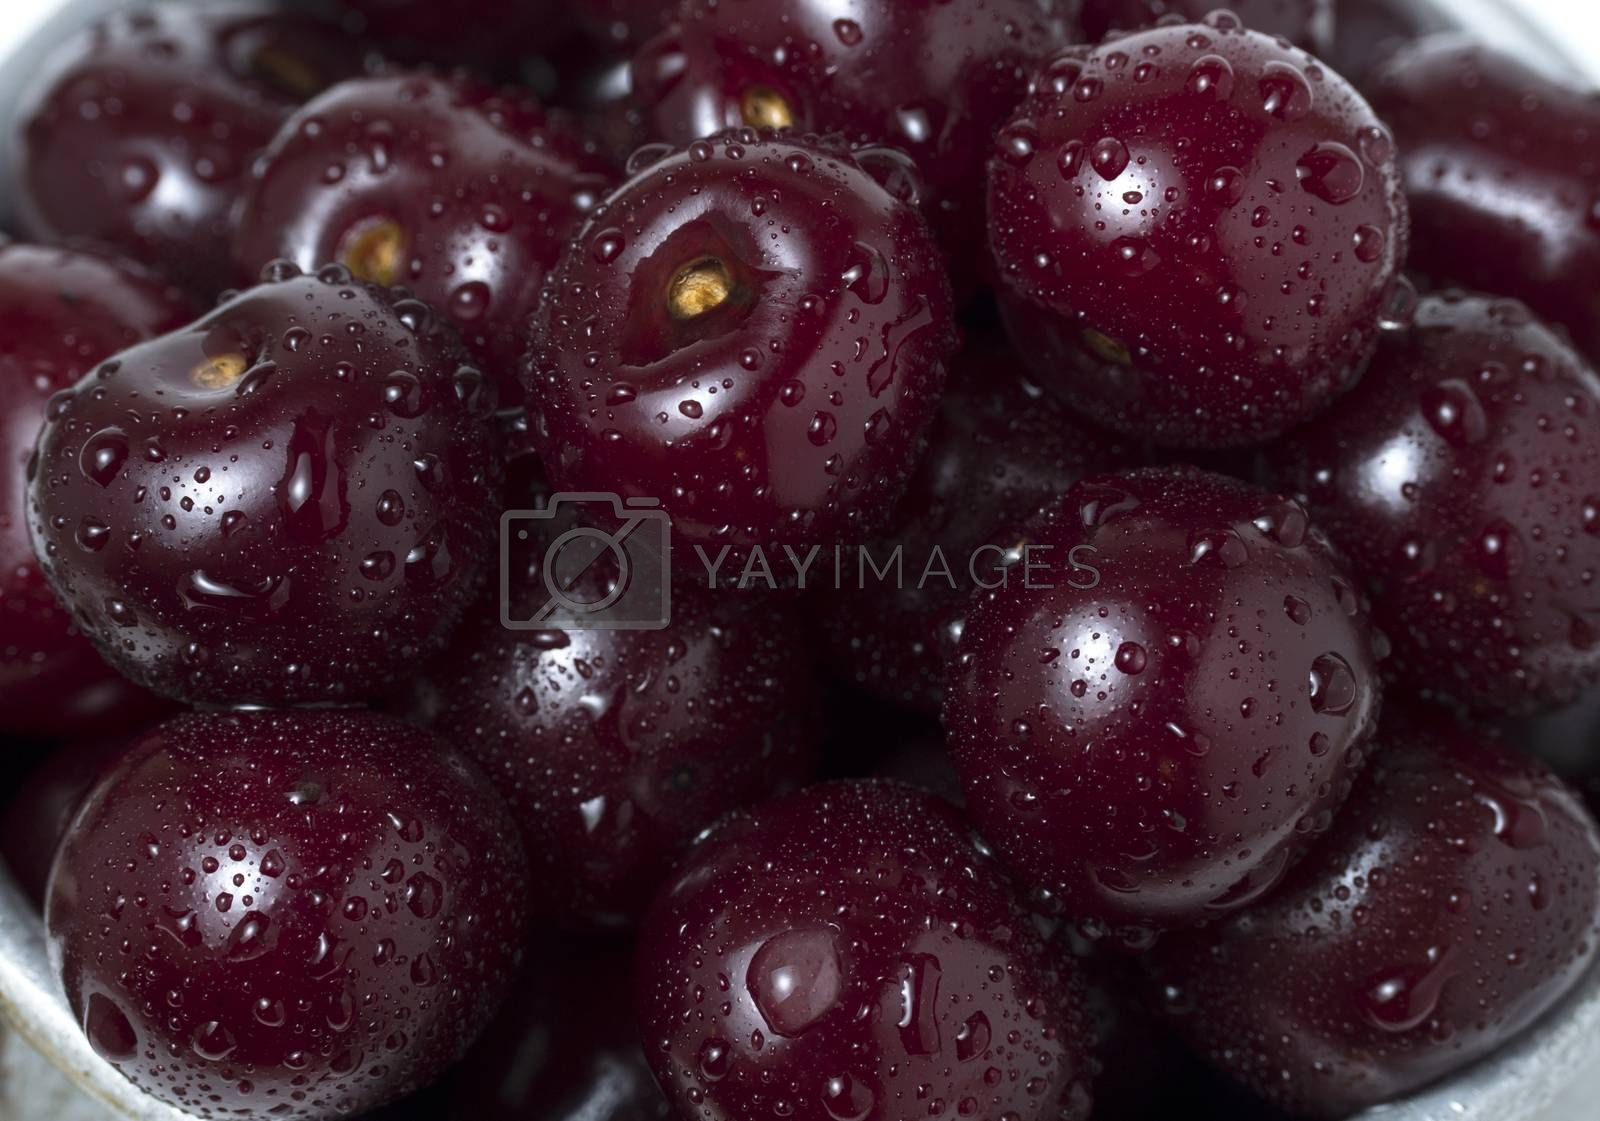 Royalty free image of Fresh ripe cherries with water drops, as background.  by phortcach